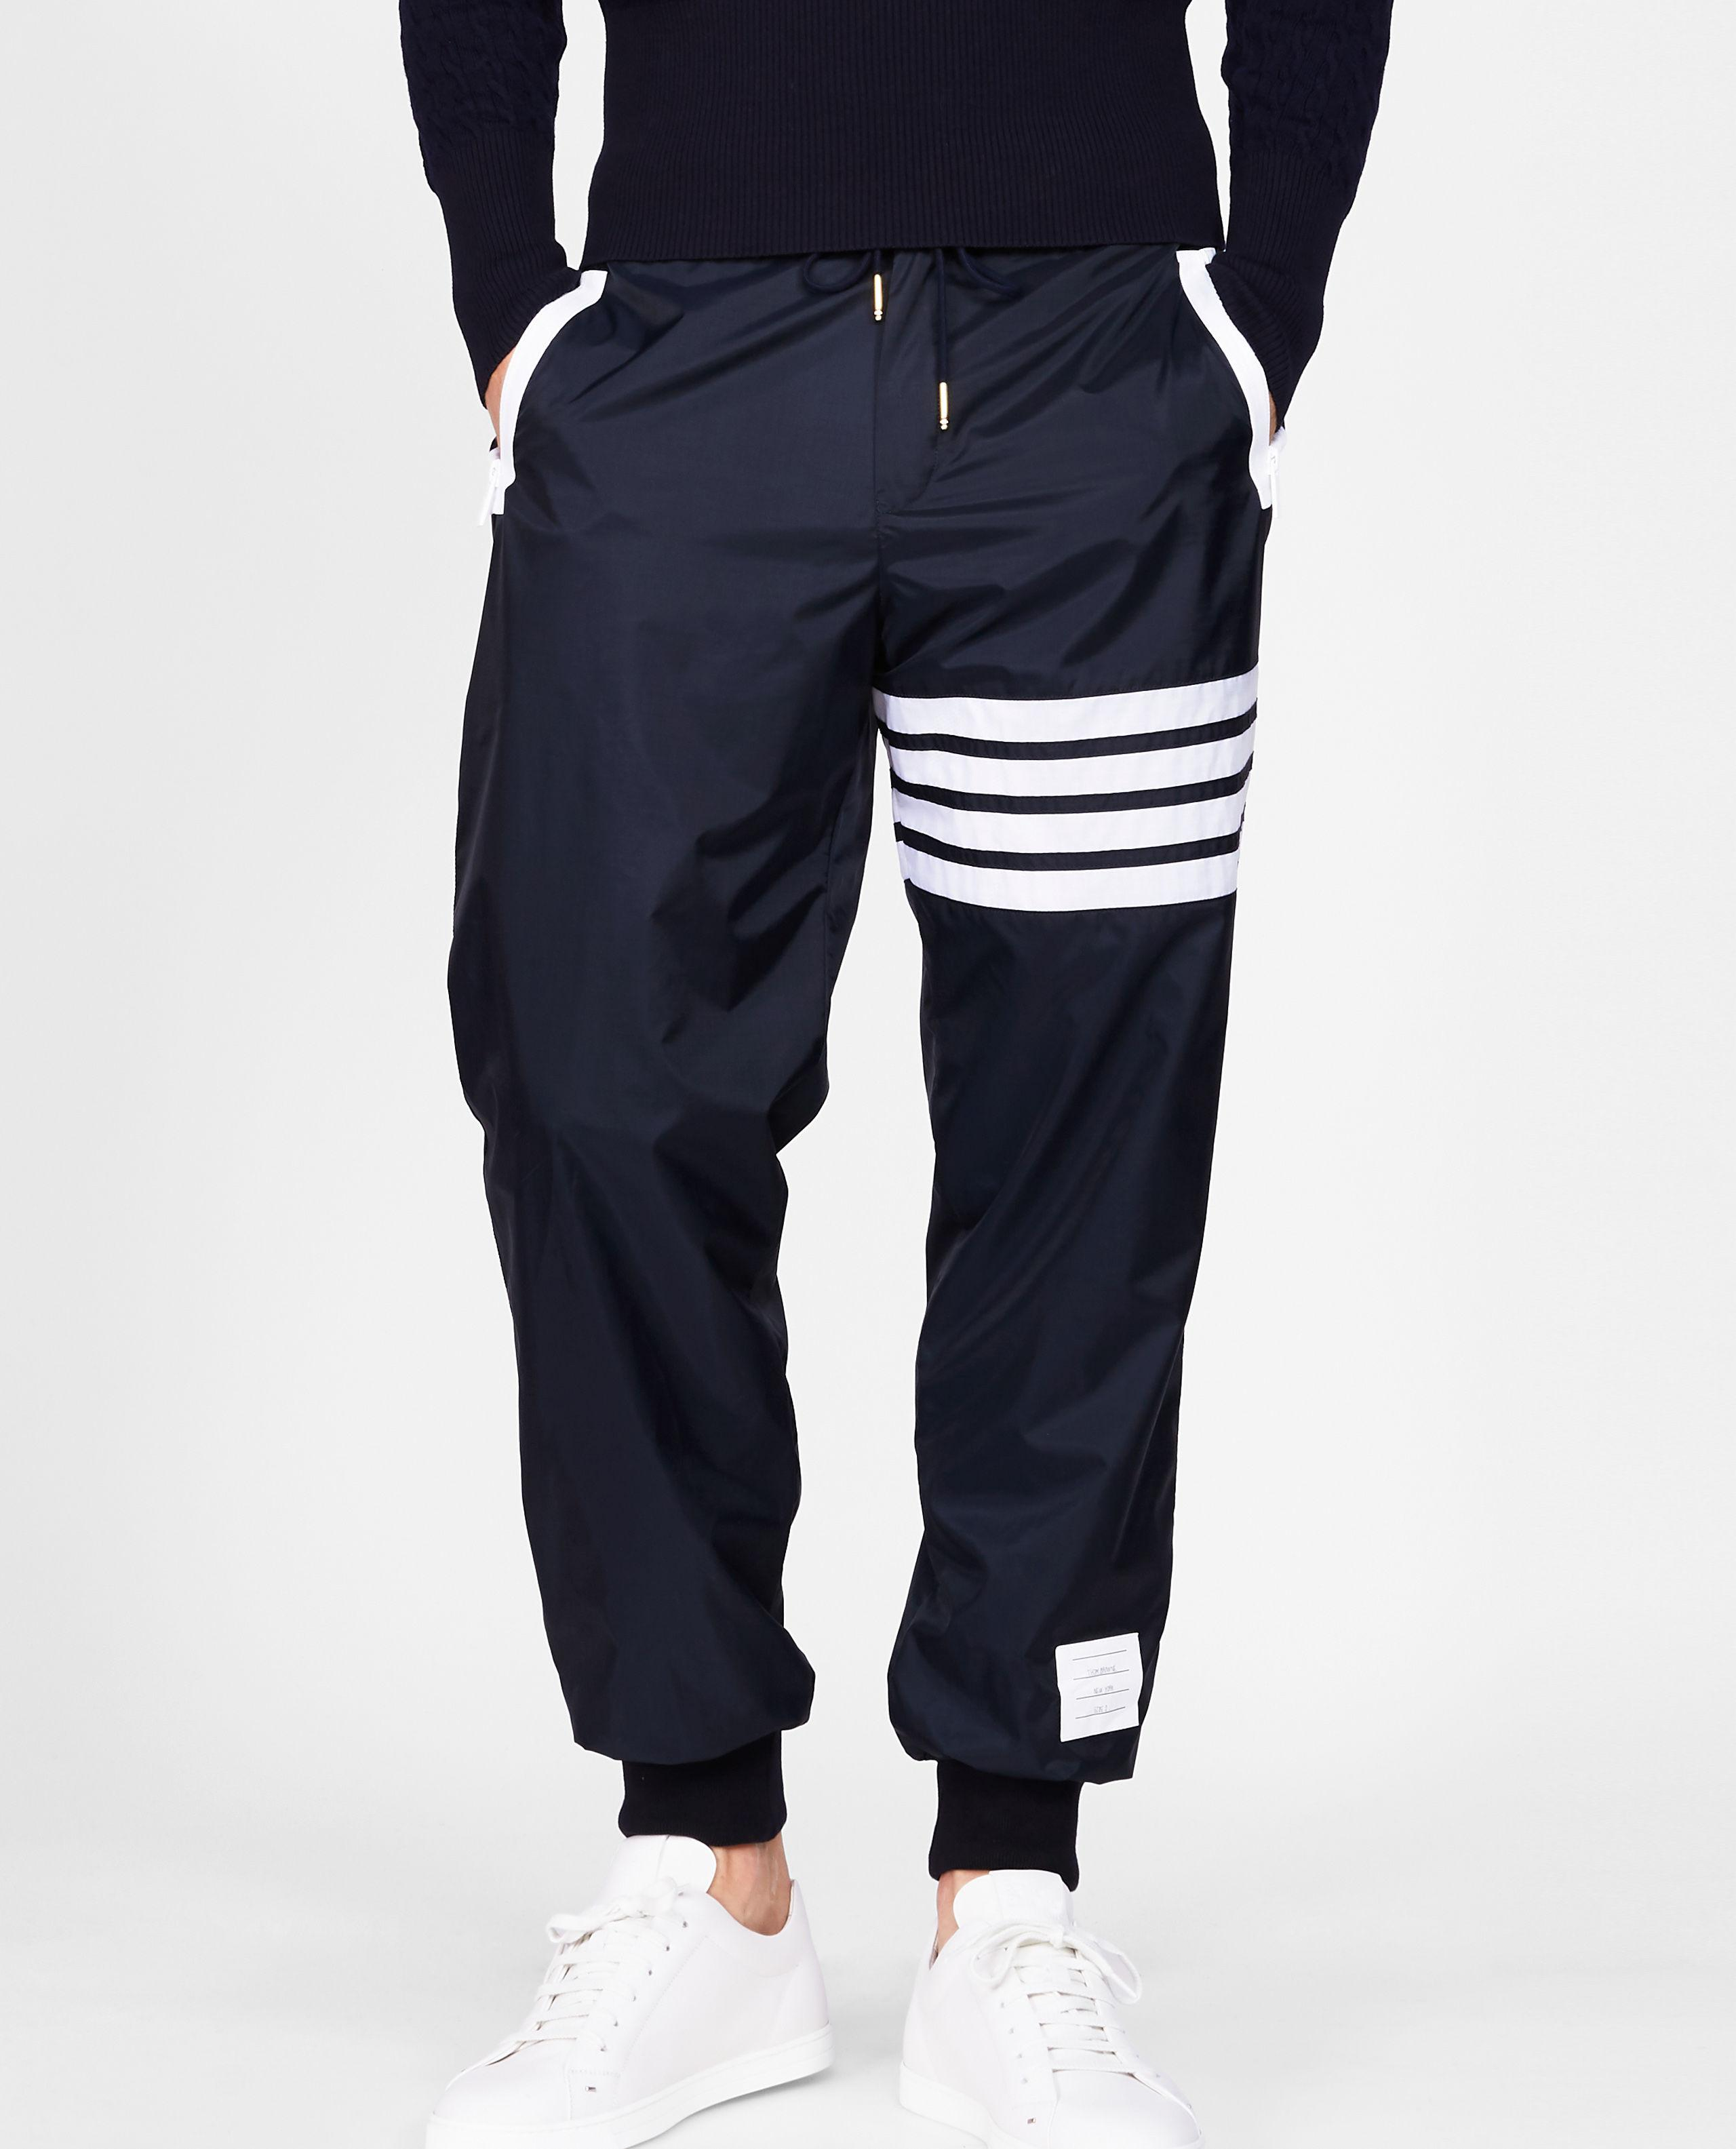 99f3ce750 Thom Browne Sporty Trousers in Blue for Men - Lyst